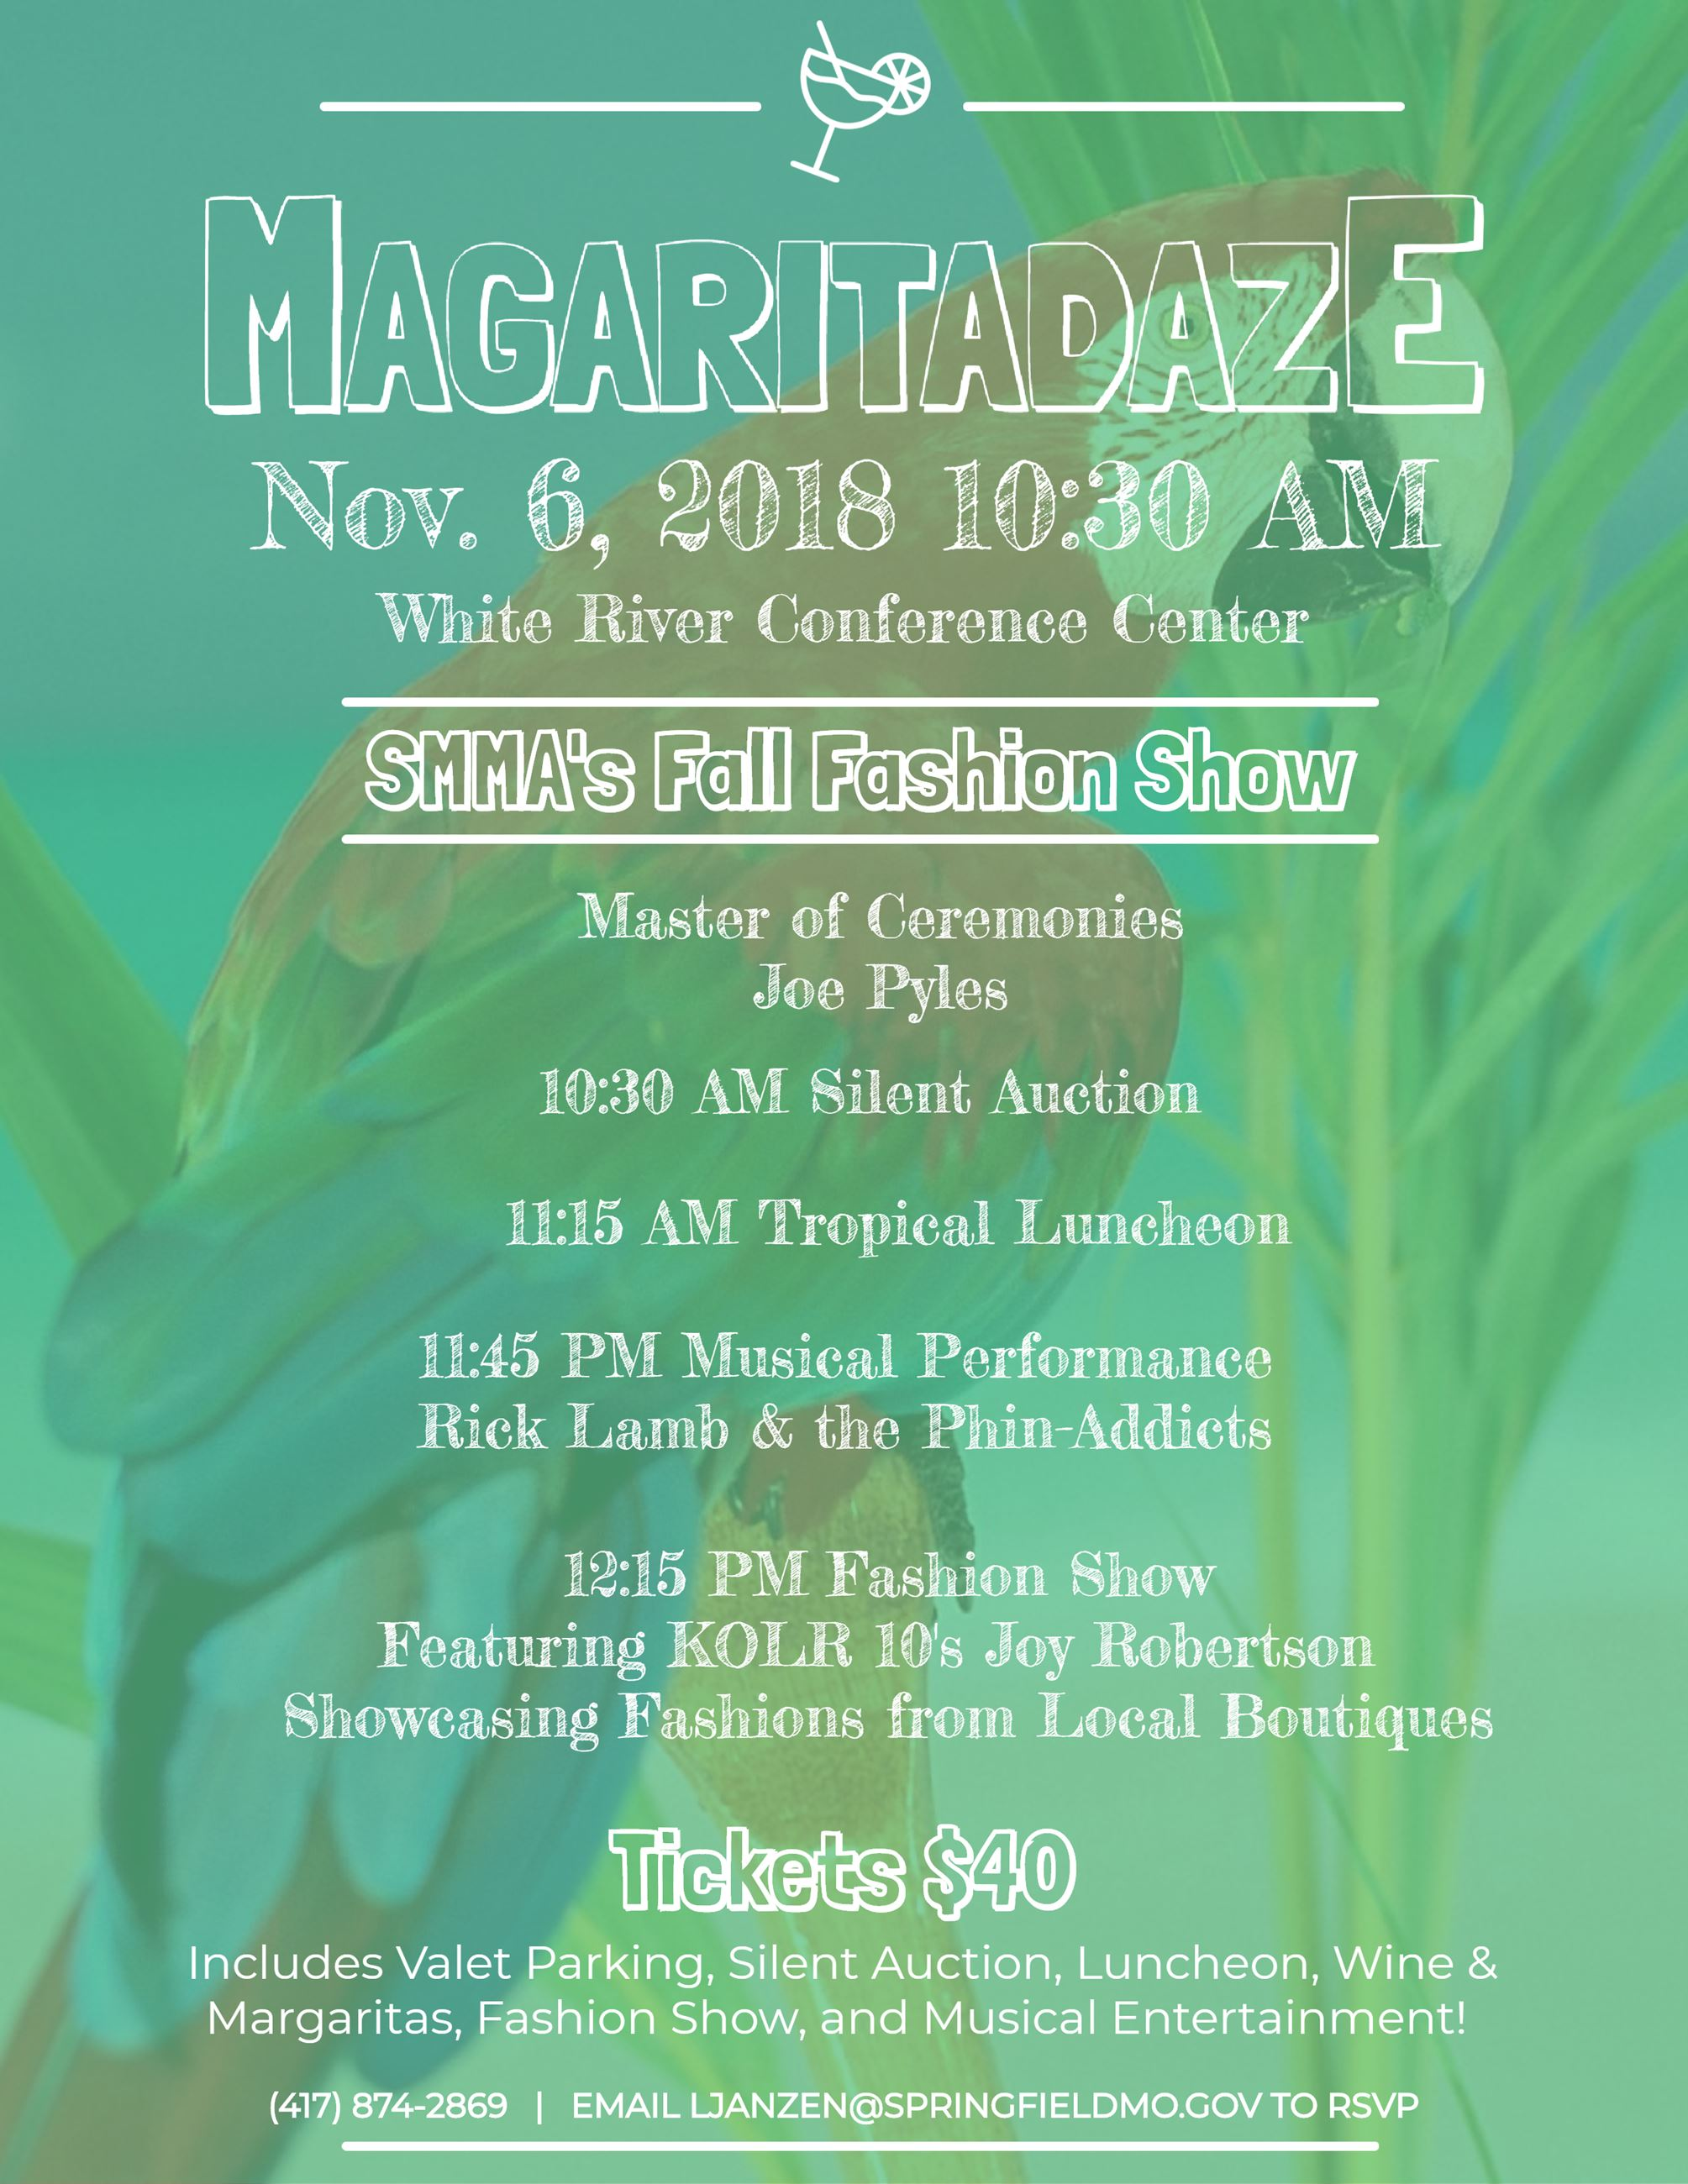 Margaritadaze flyer featuring a colorful parrot and palm fronds underneath a lime green overlay.